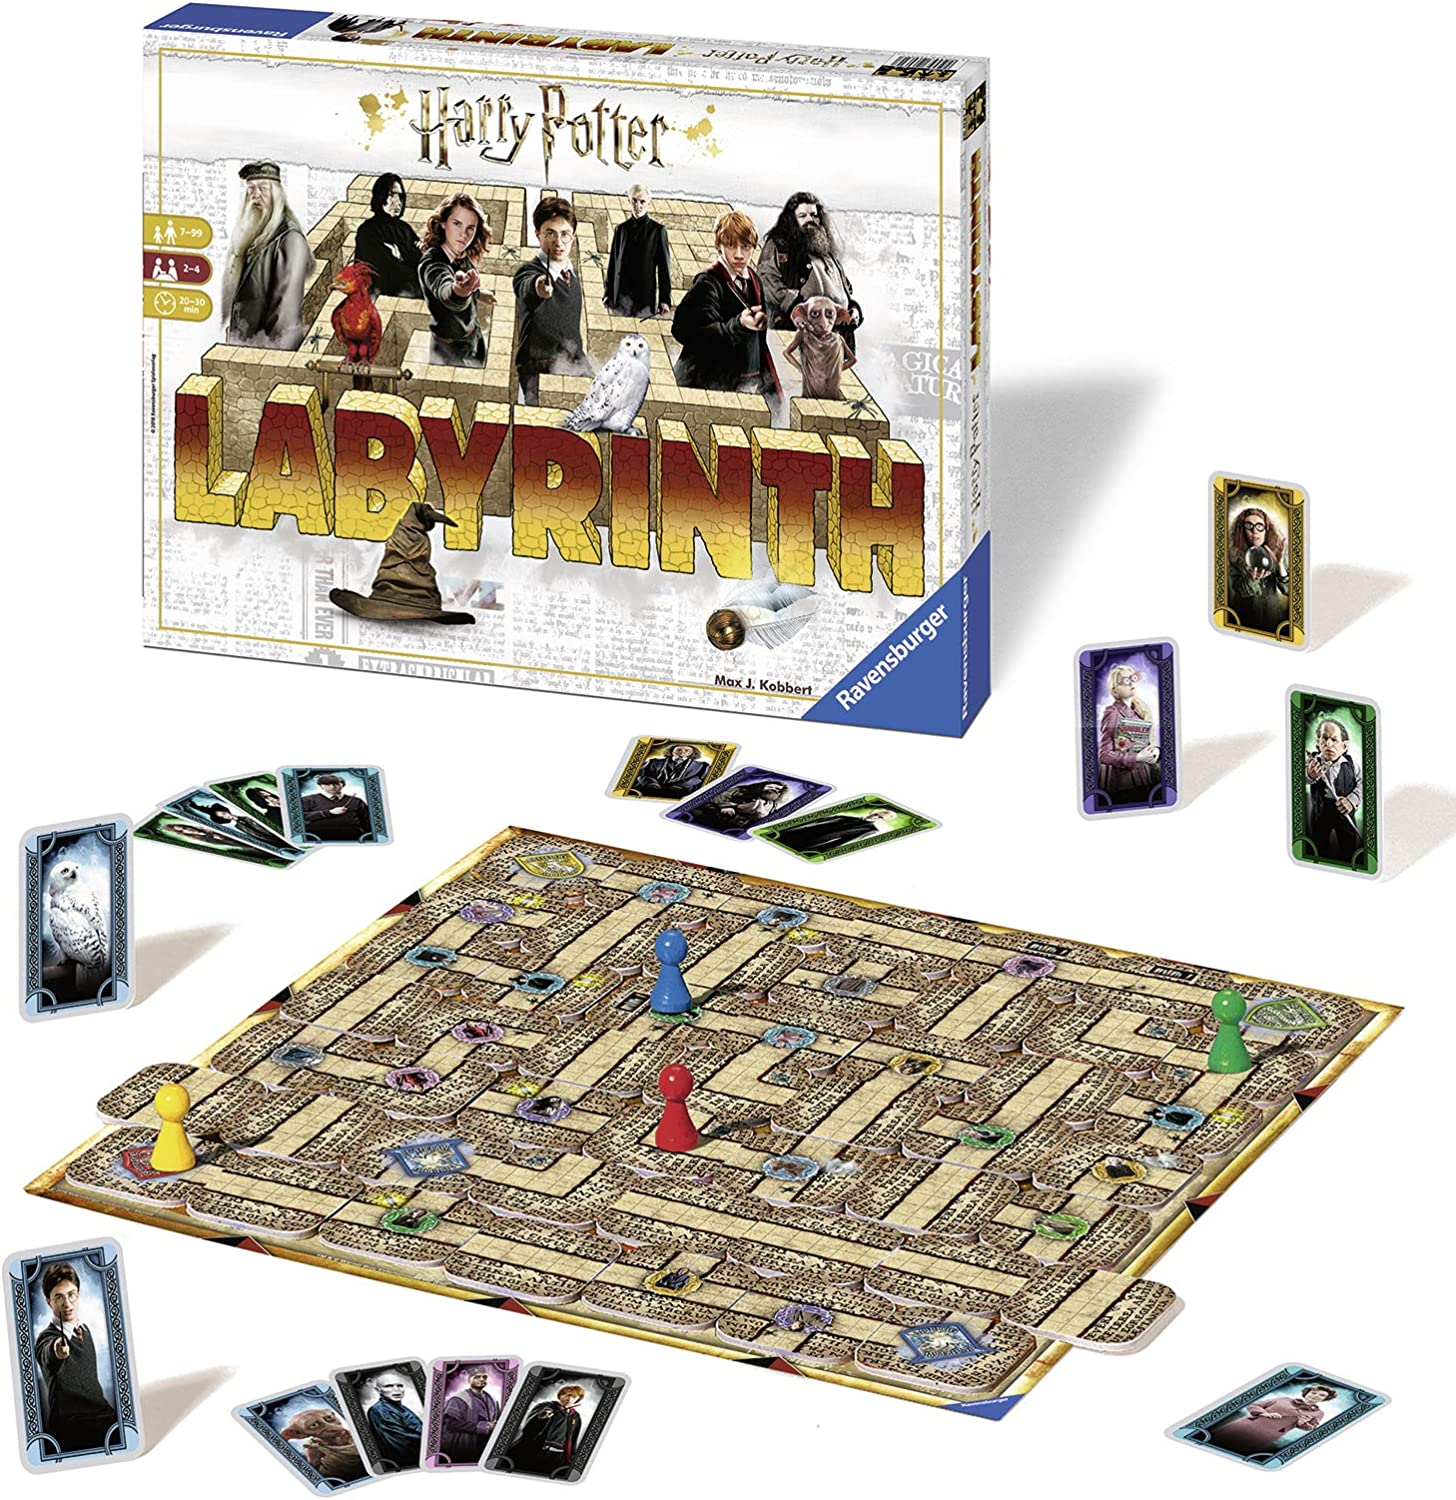 Ravensburger Harry Potter Labyrinth Game Board Games Amazon Canada